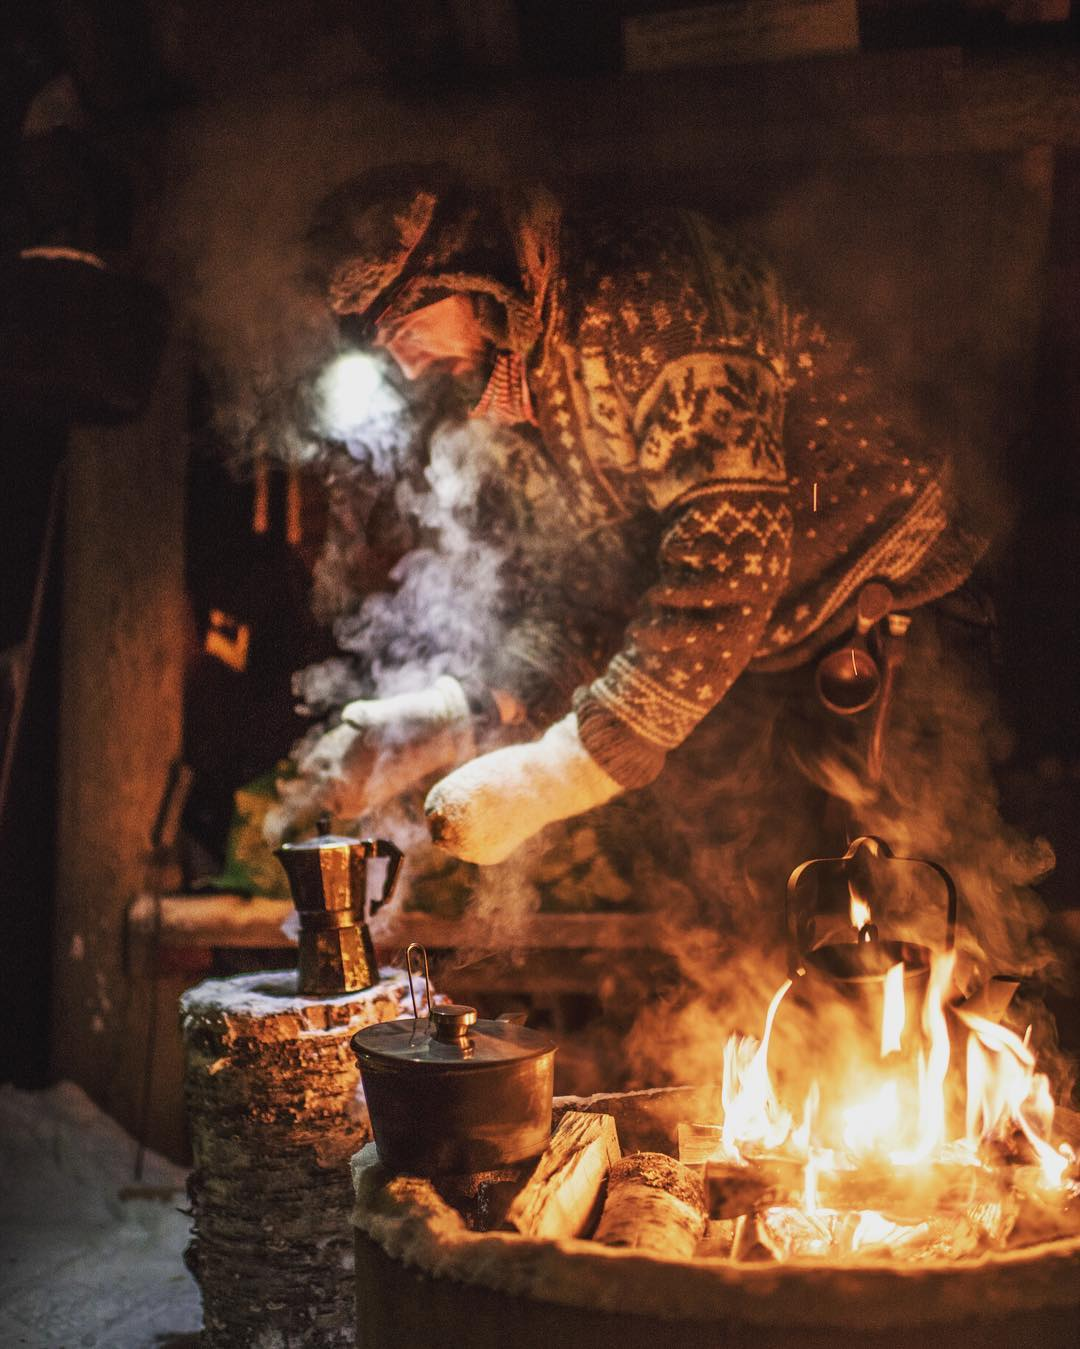 The Campfire barista preparing a delicious Latte. Picture by Otto Ponto